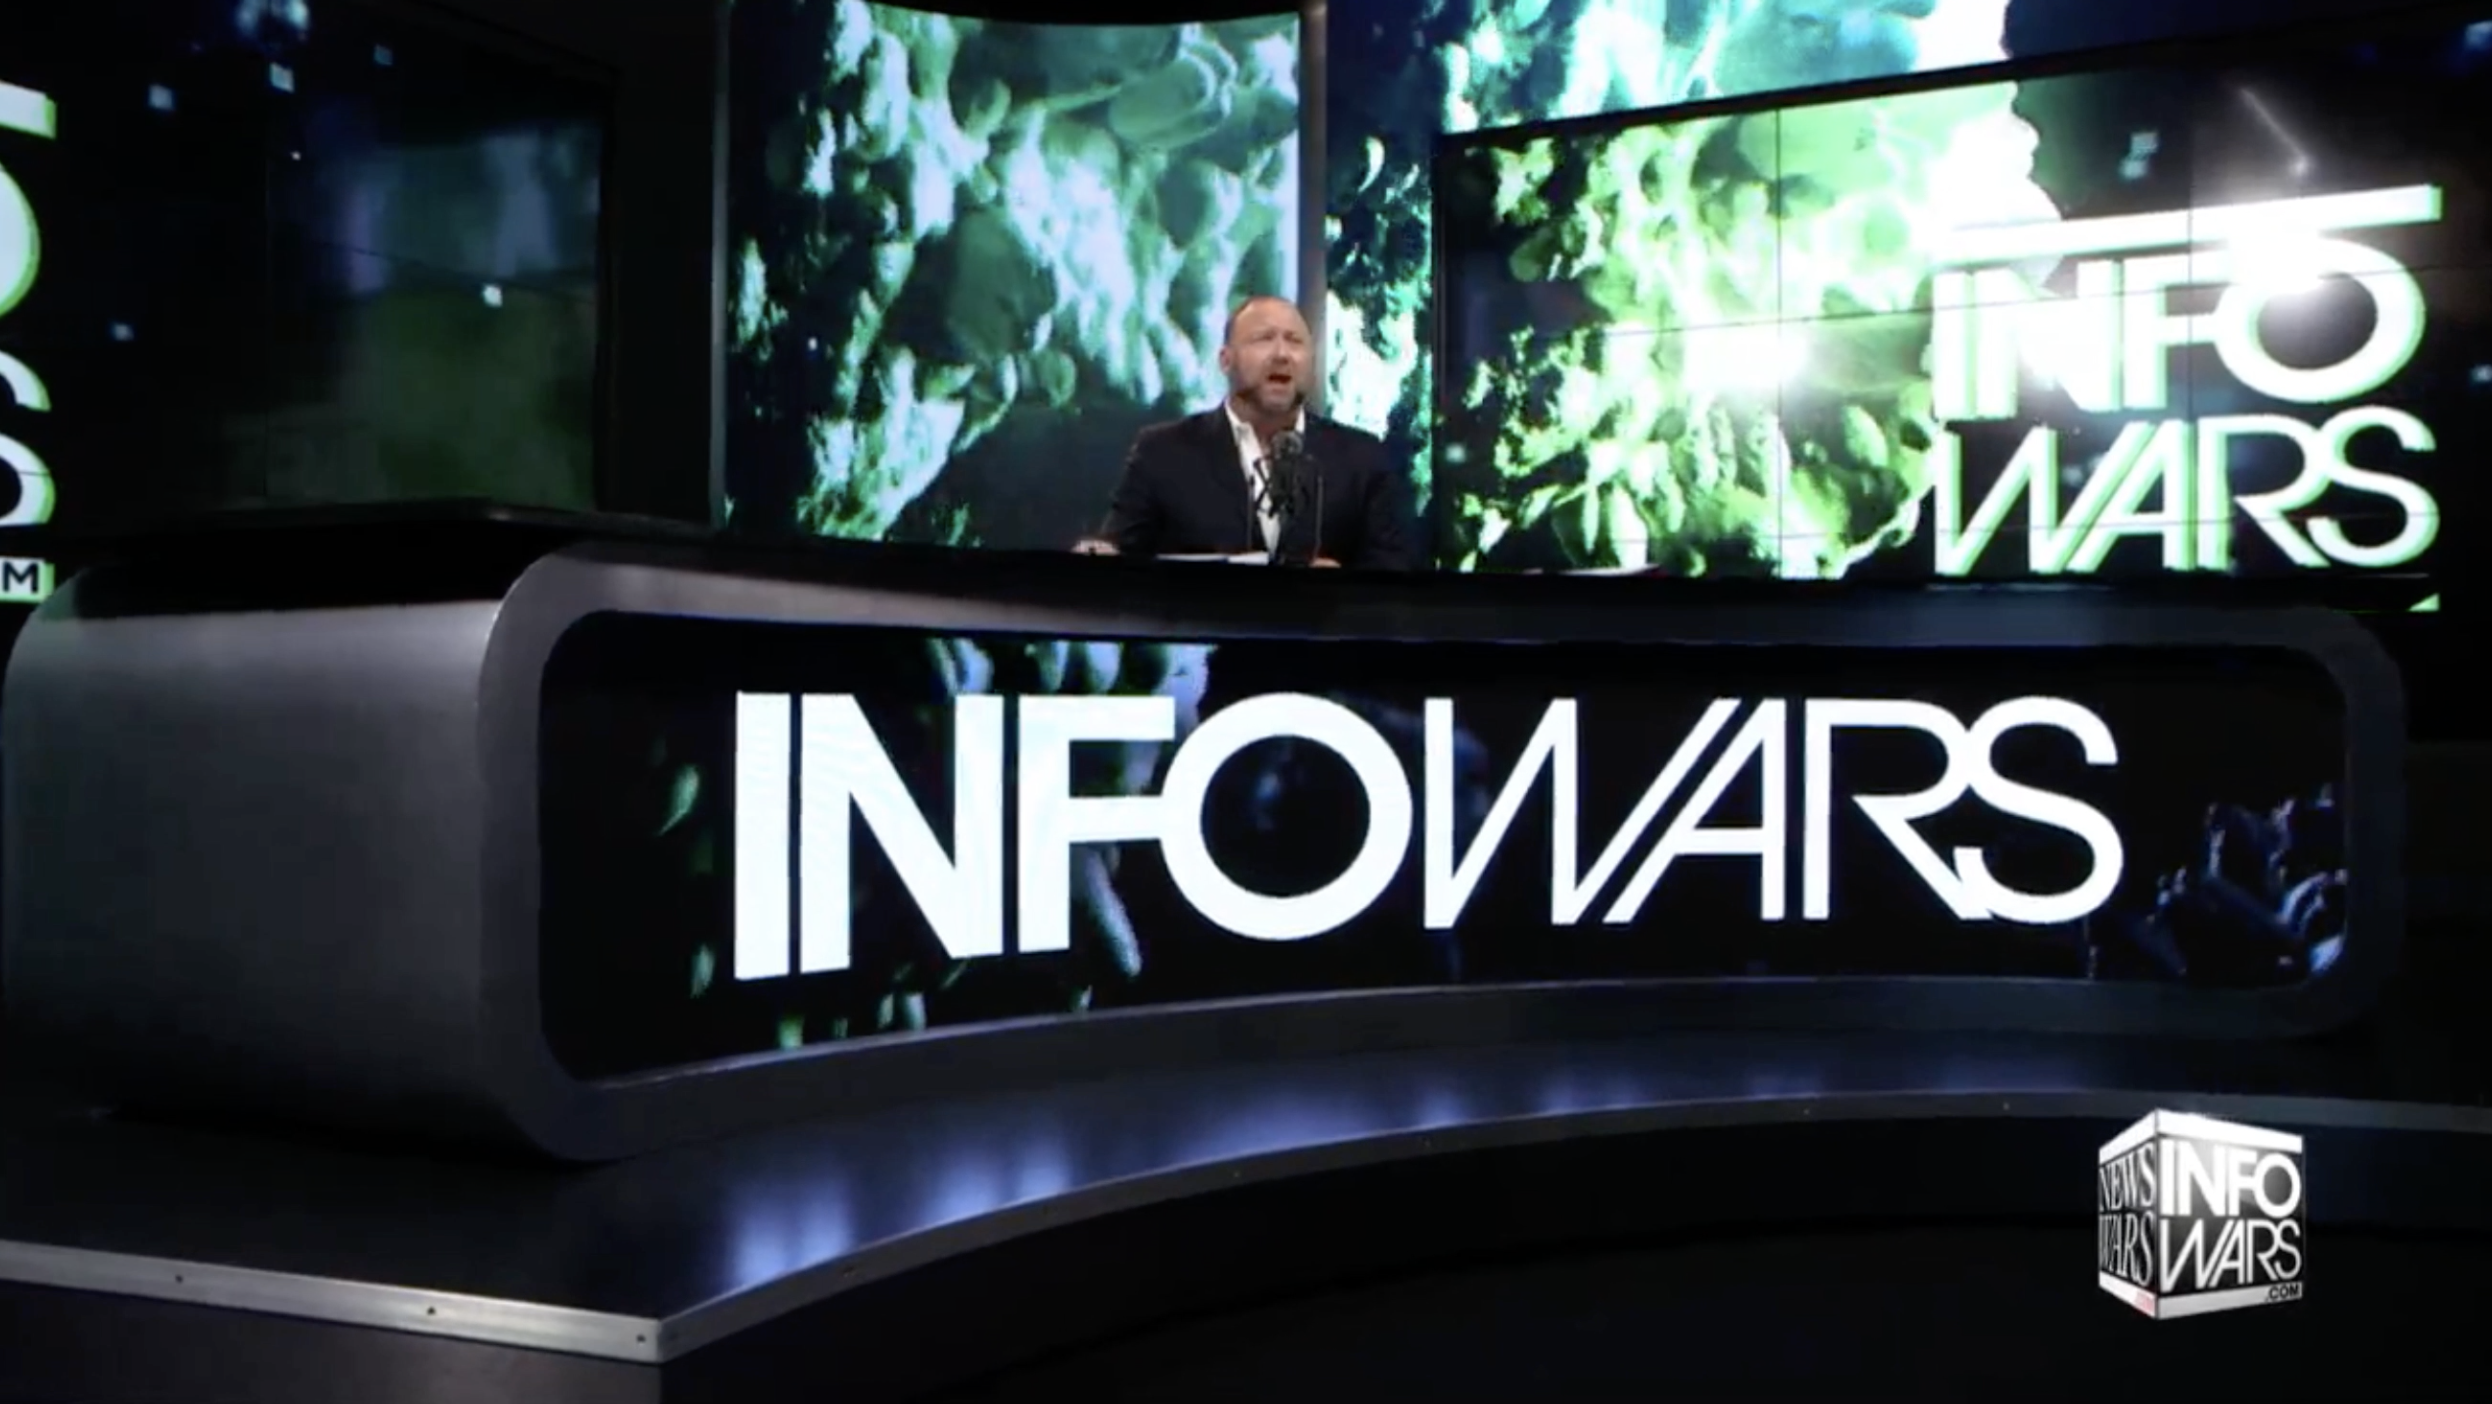 Alex Jones Infowars 2 10 2020